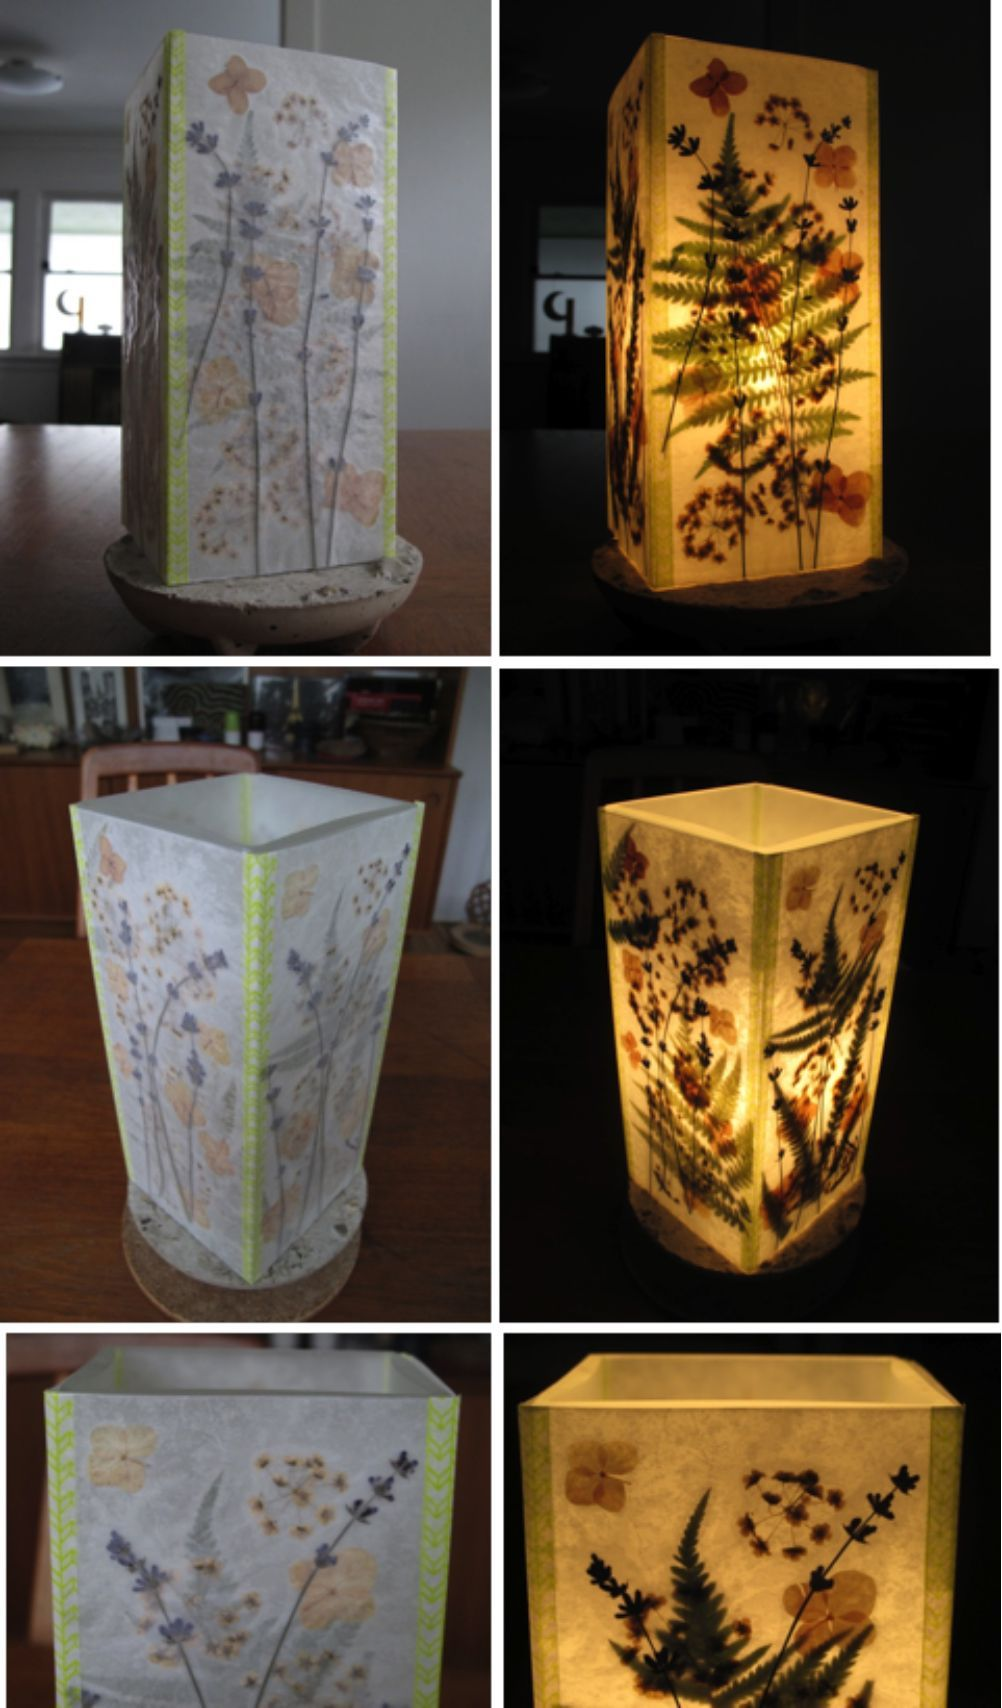 Diy pressed flower wax paper luminaria and ikea lamp makeover how diy pressed flower wax paper luminaria and ikea lamp makeover mightylinksfo